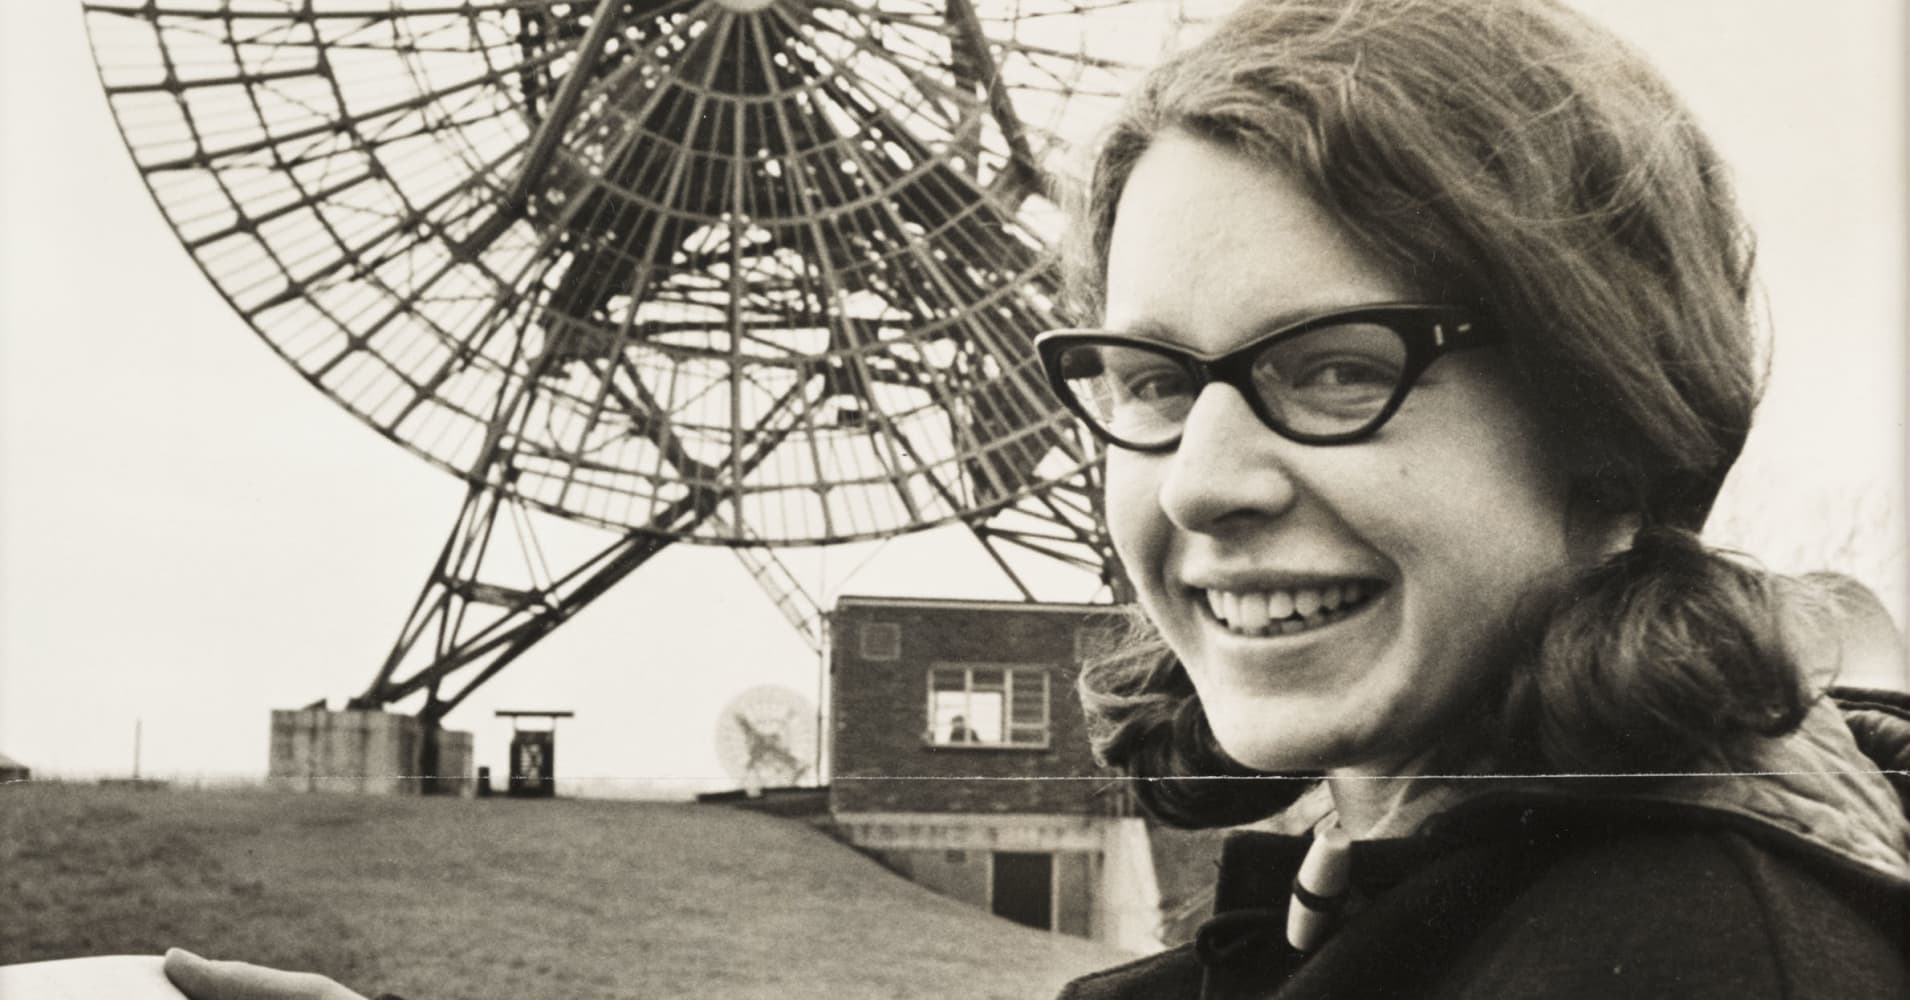 A photograph of Jocelyn Bell Burnell (born 1943) at the Mullard Radio Astronomy Observatory at Cambridge University, taken for the Daily Herald newspaper in 1968.